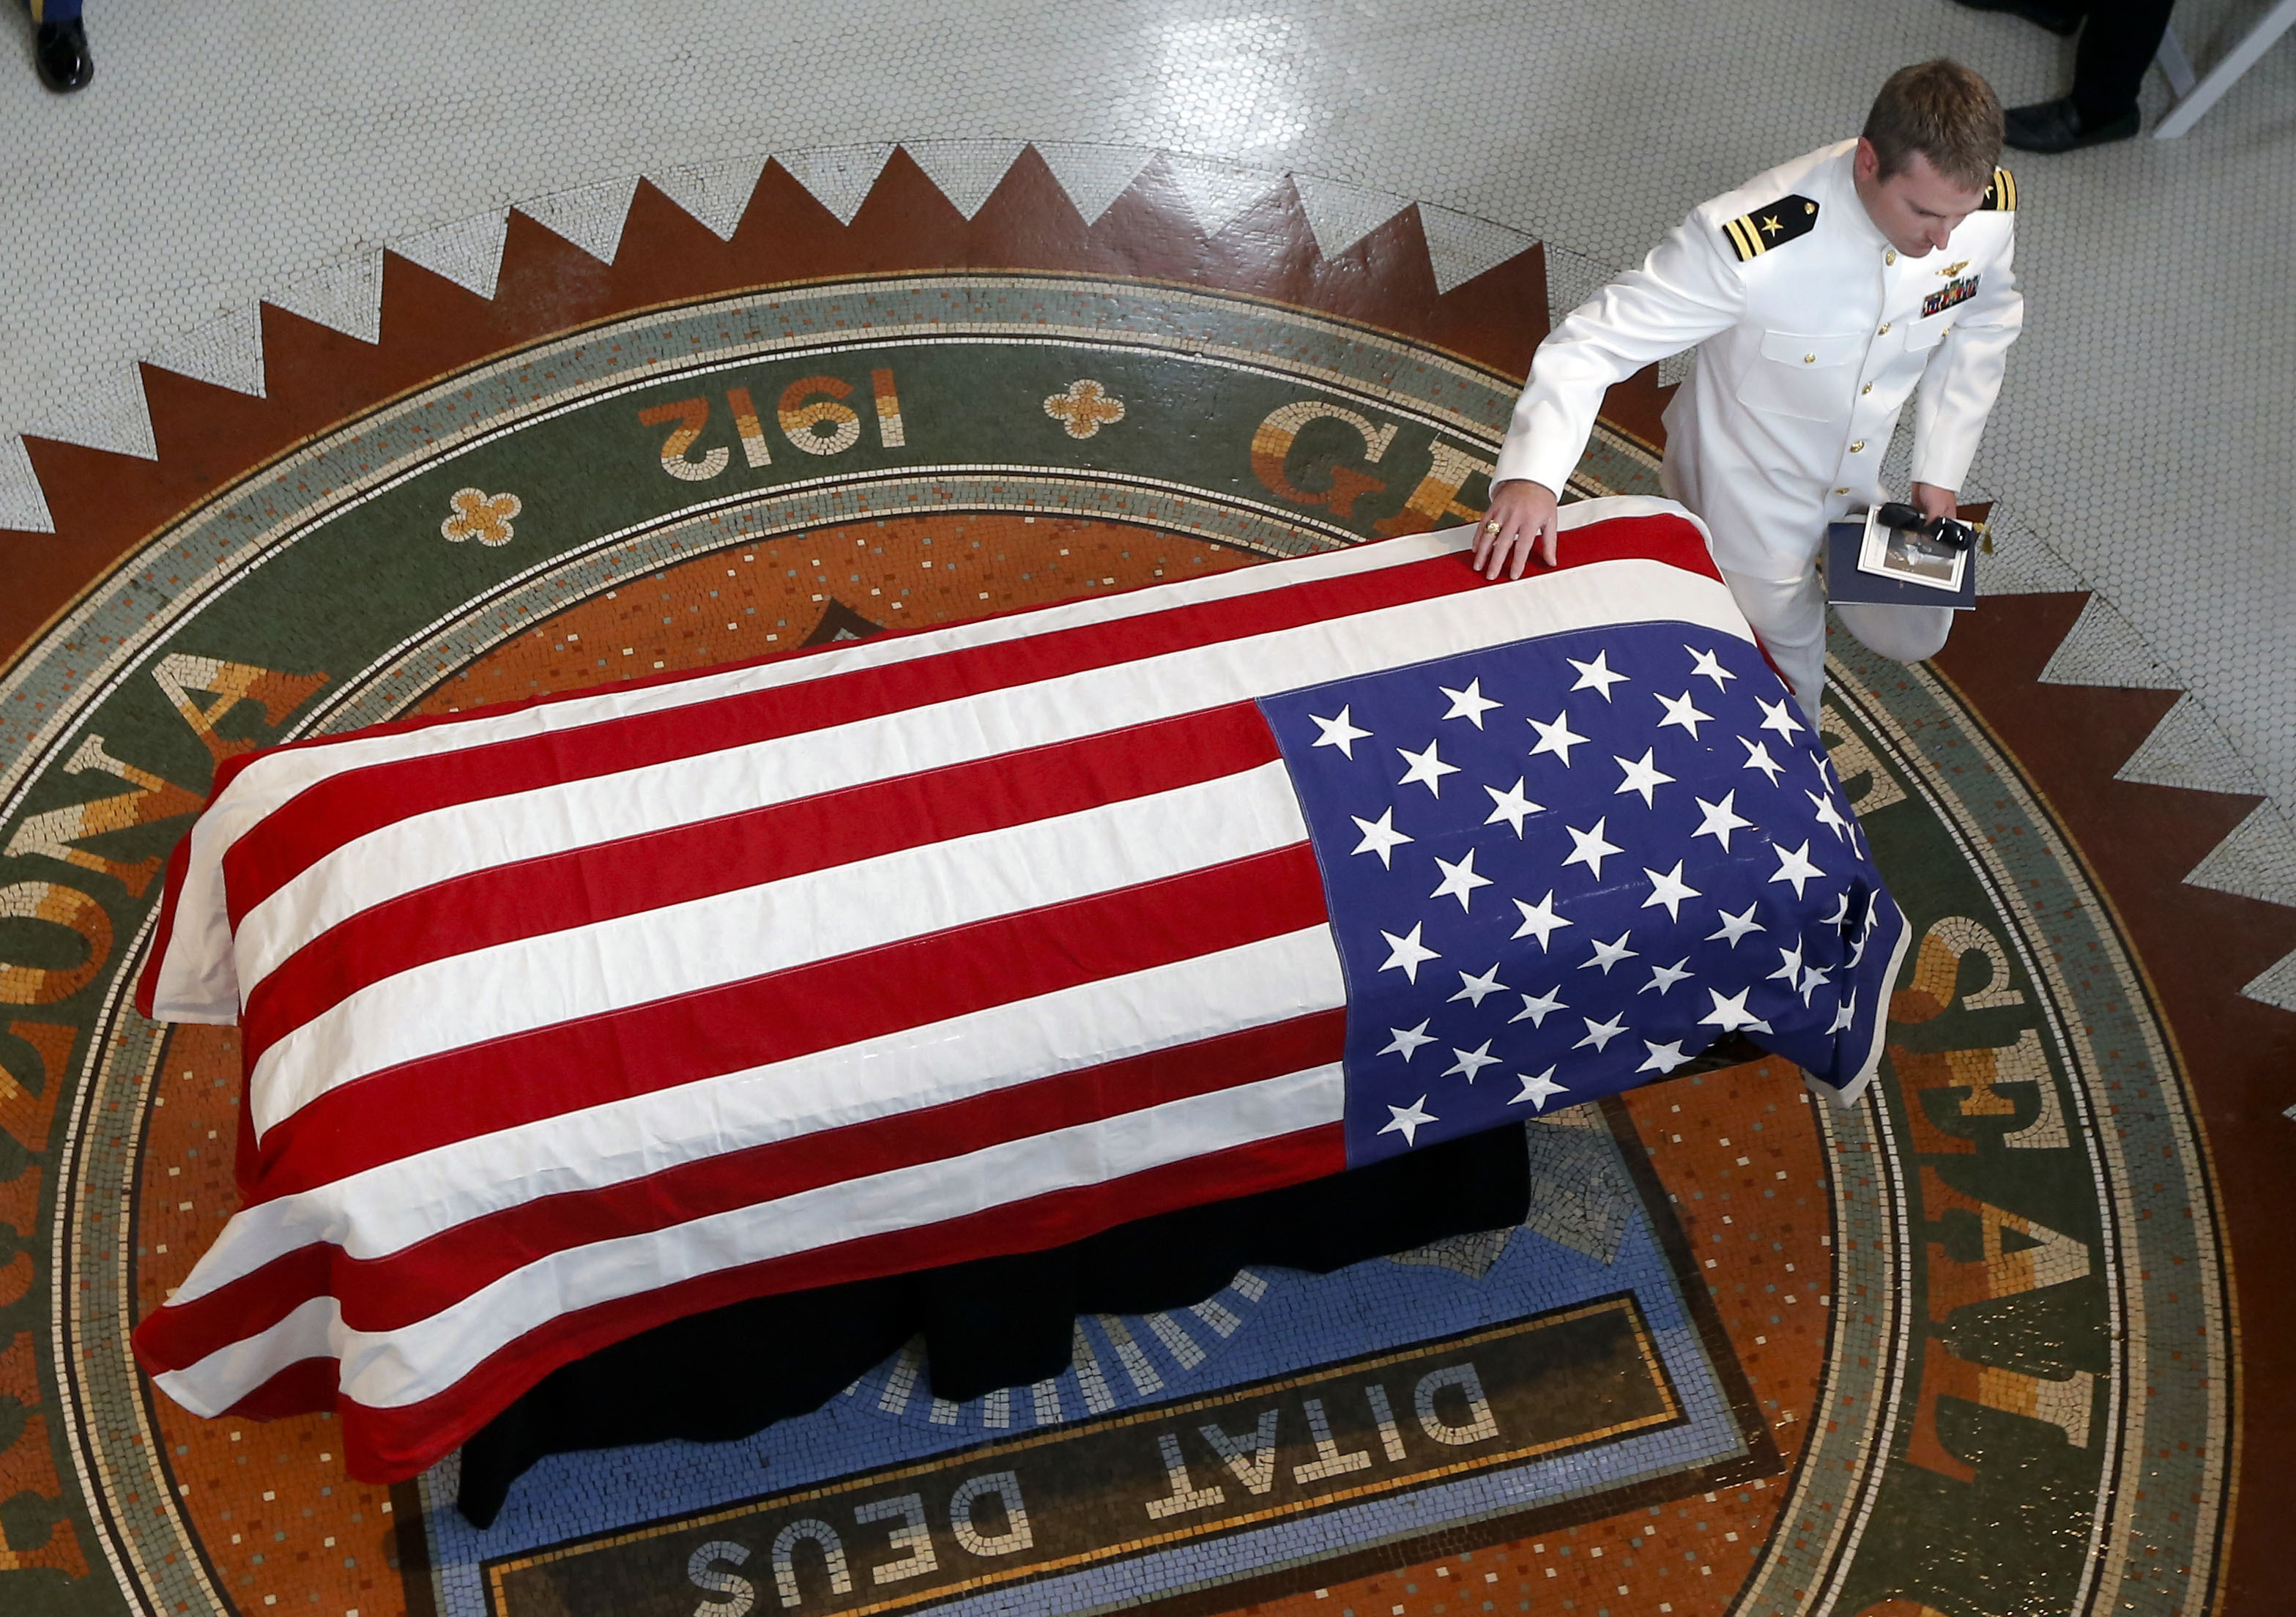 Jack McCain son of Sen. John McCain R-Ariz. touches his father's casket during a memorial service at the Arizona Capitol on Wednesday in Phoenix